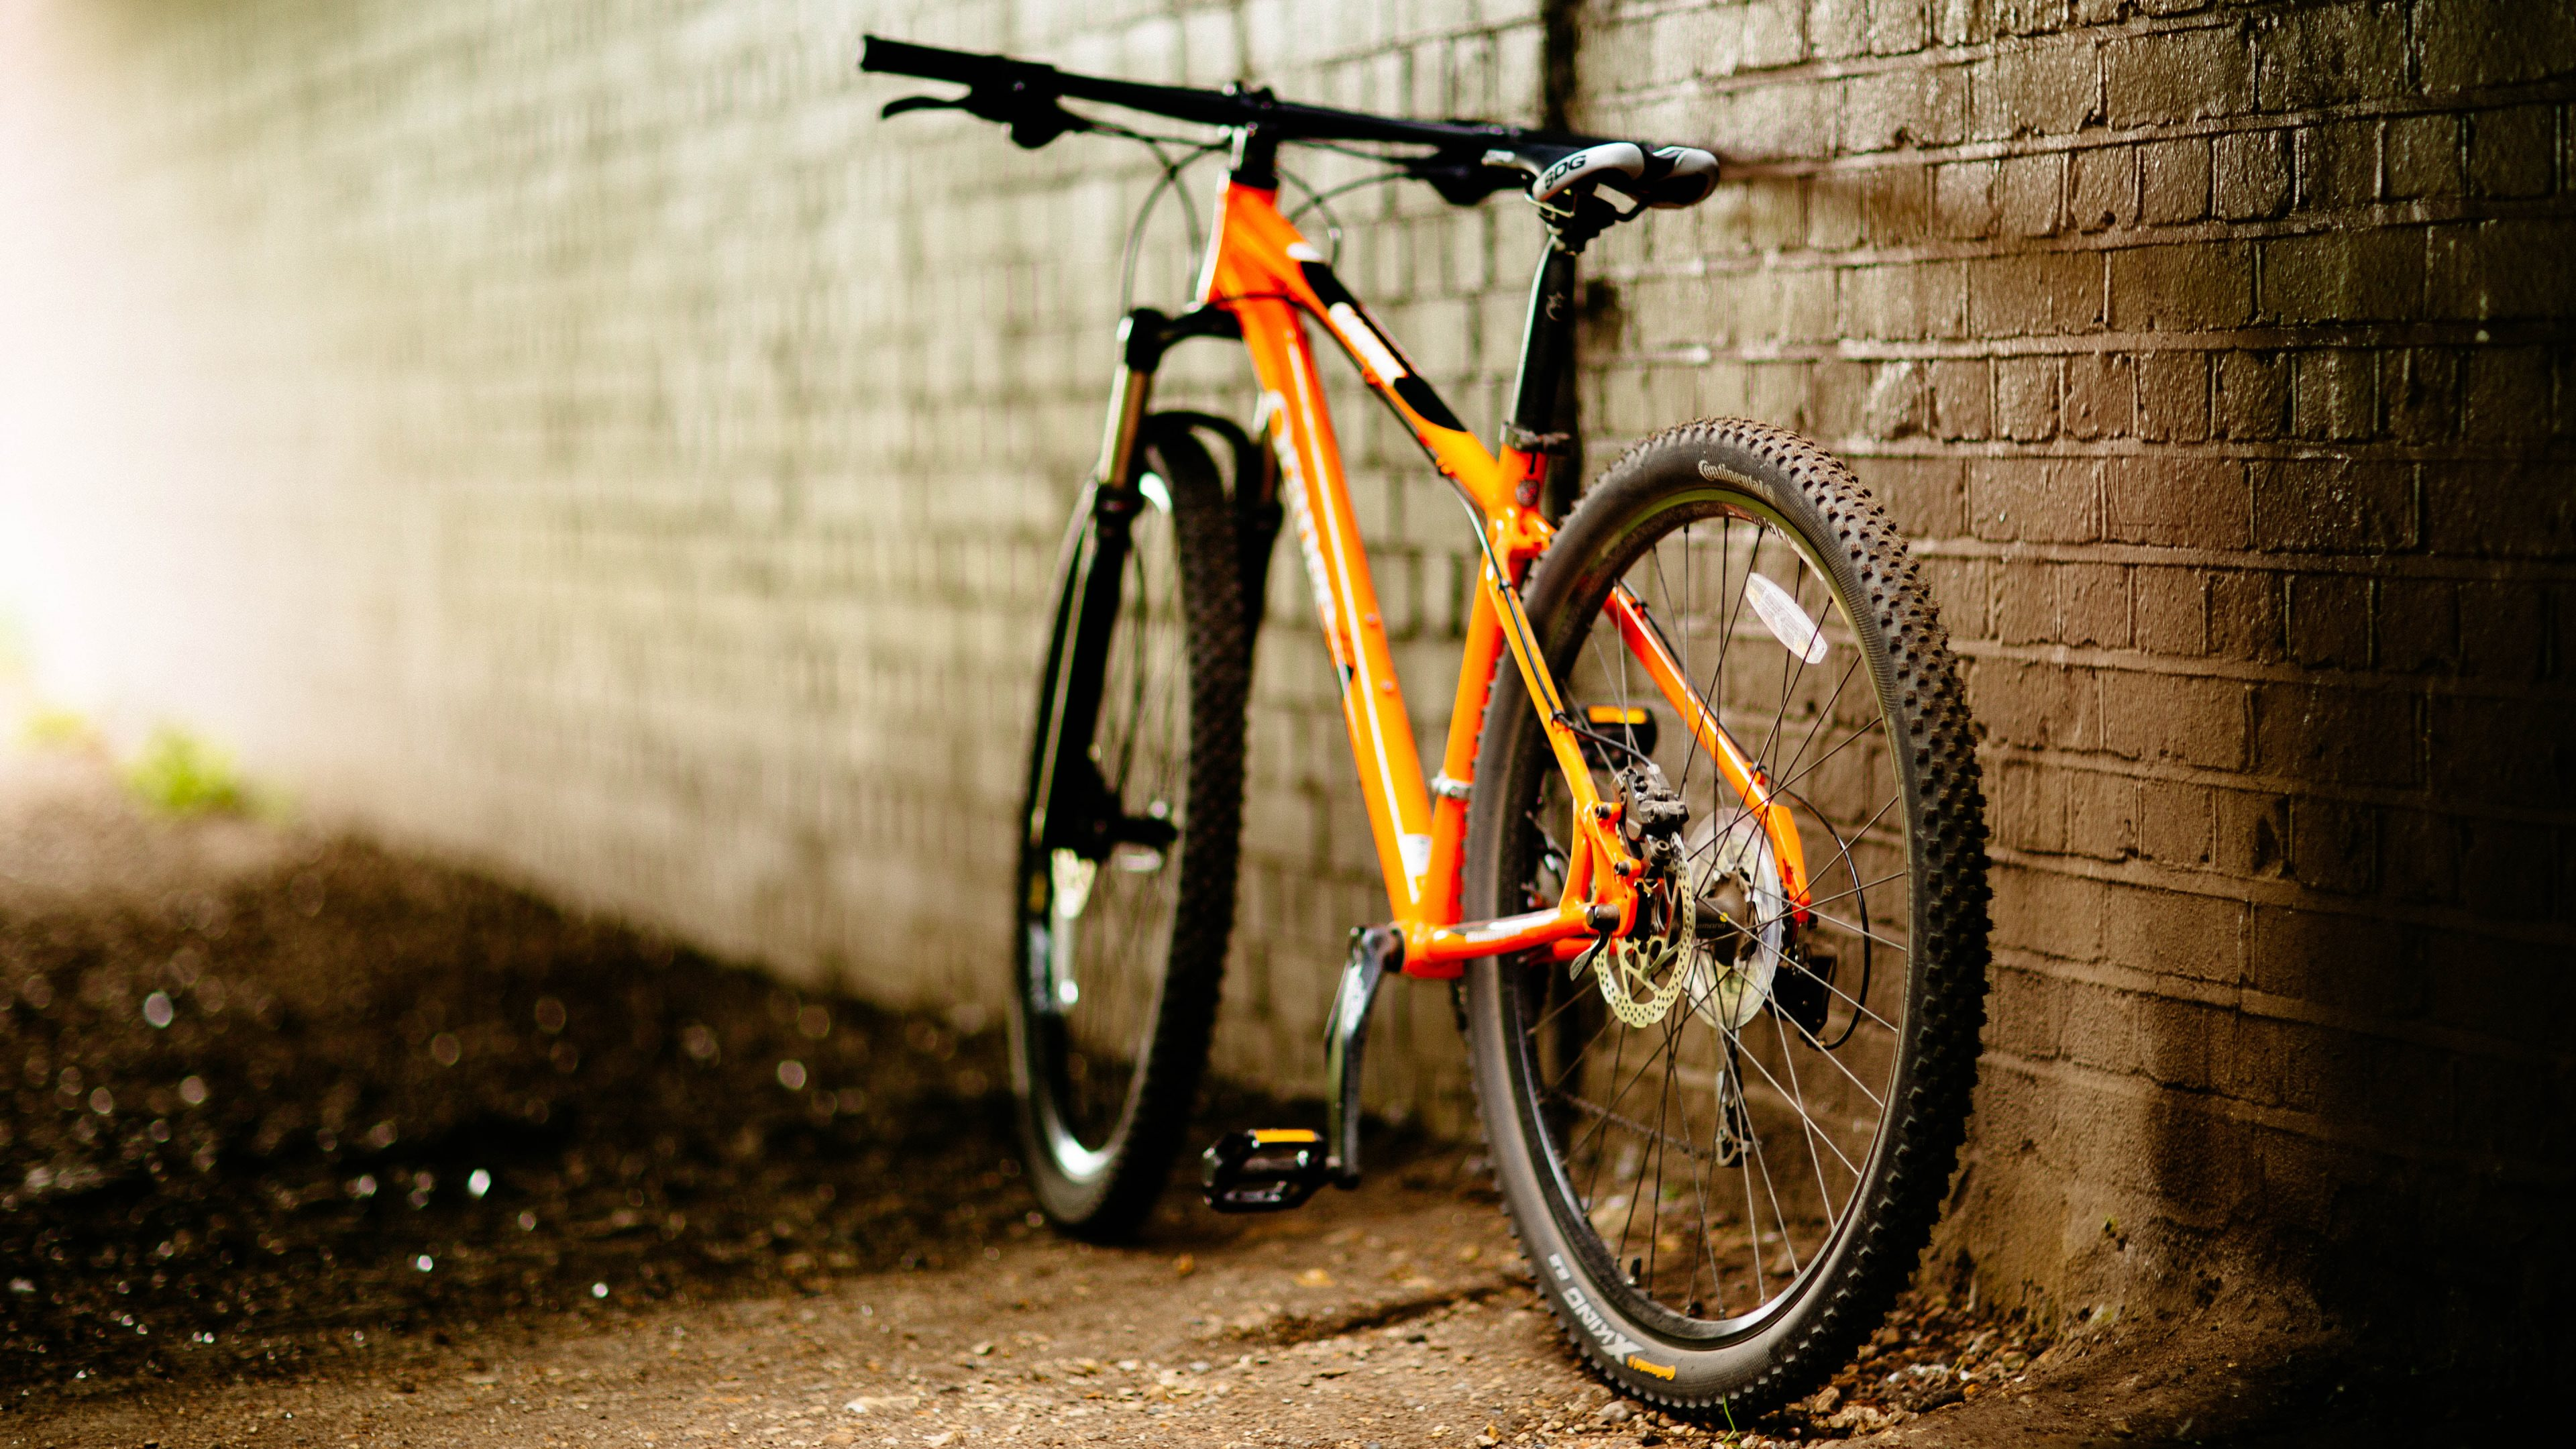 155 Bicycle HD Wallpapers Backgrounds Wallpaper Abyss